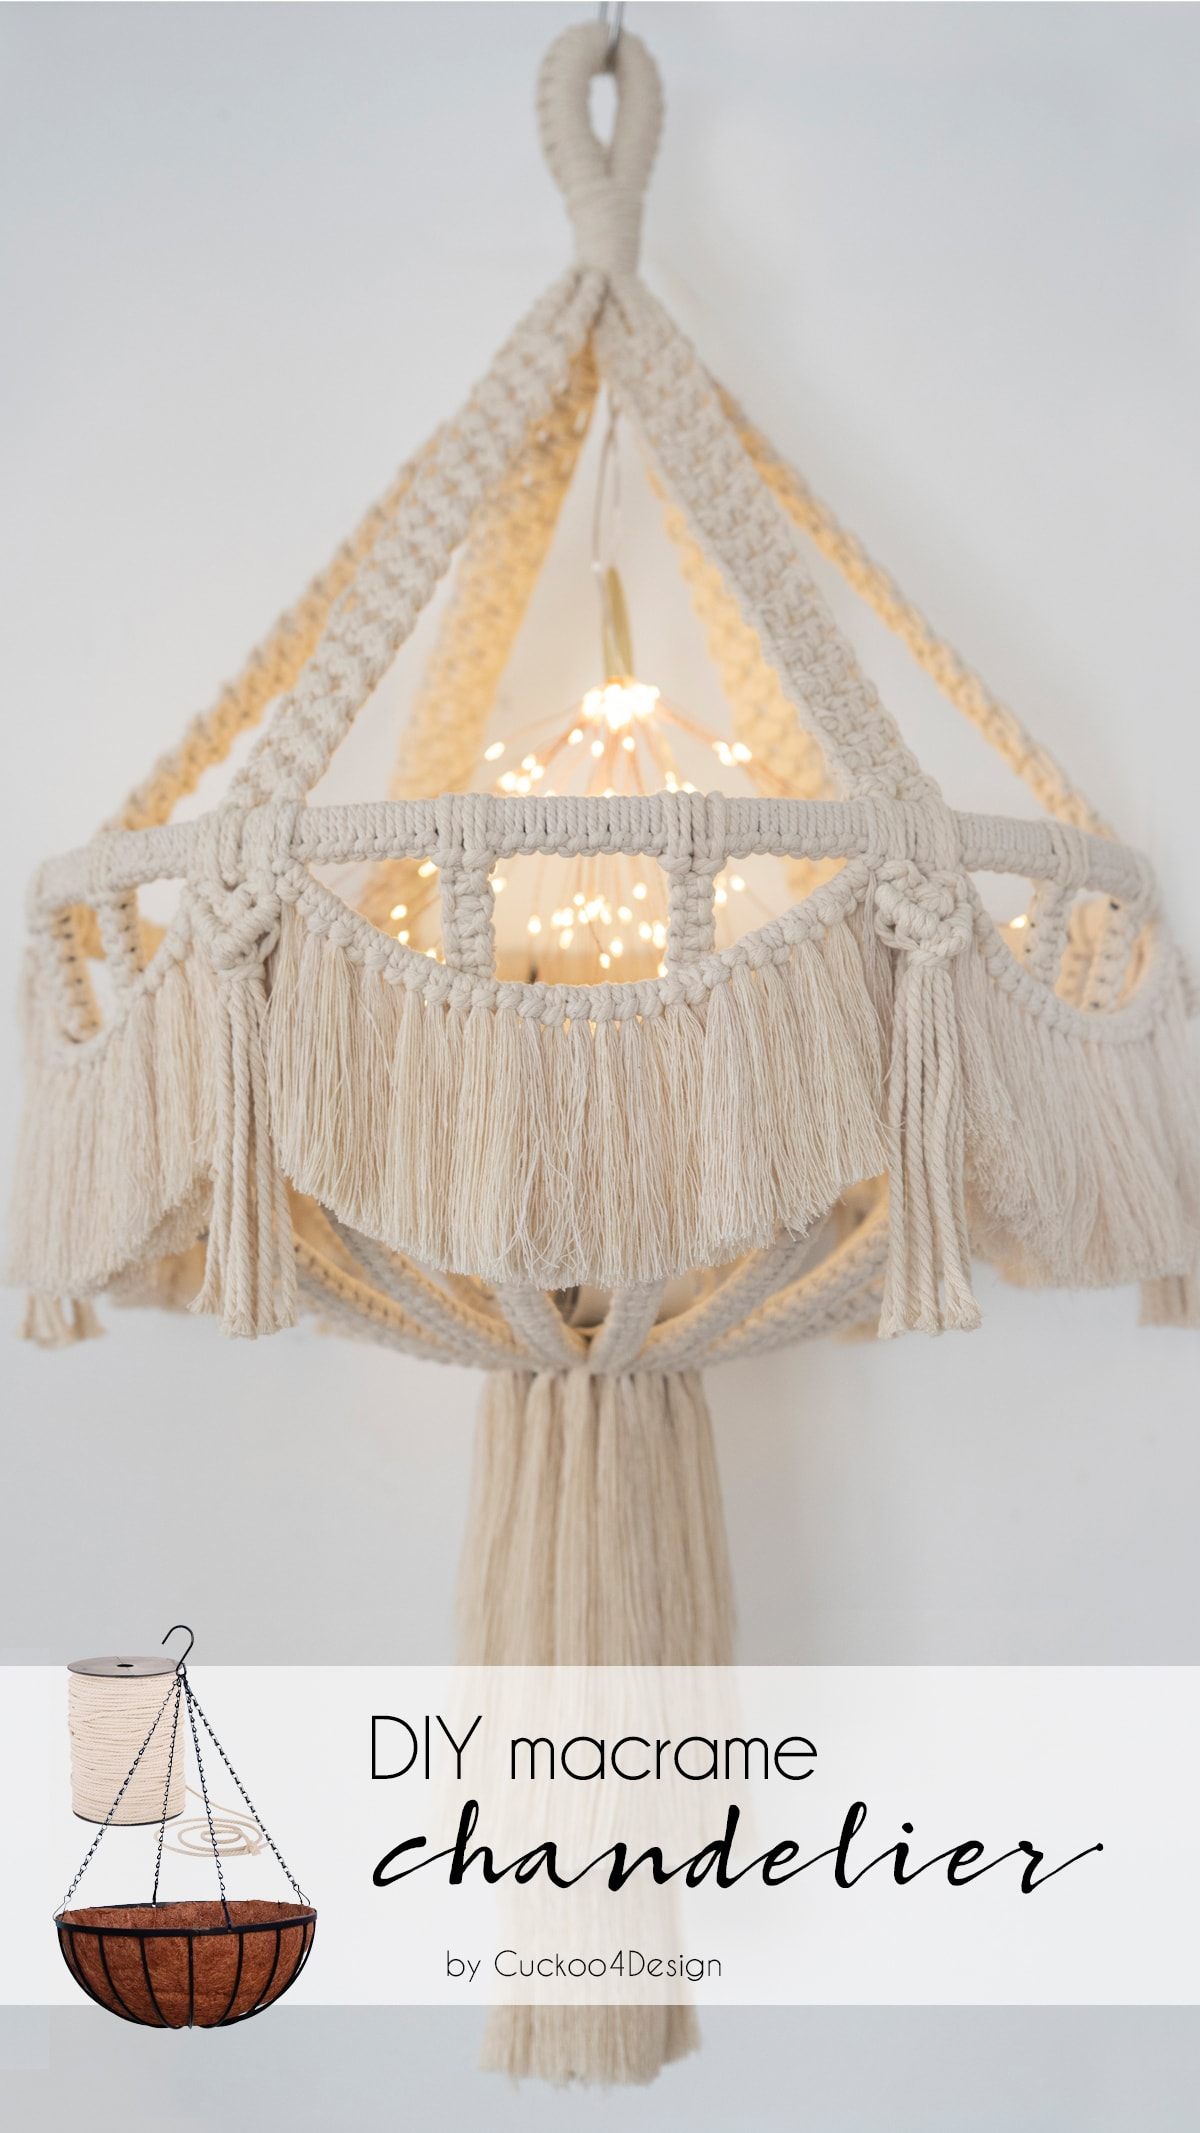 DIY macrame chandelier with video tutorial